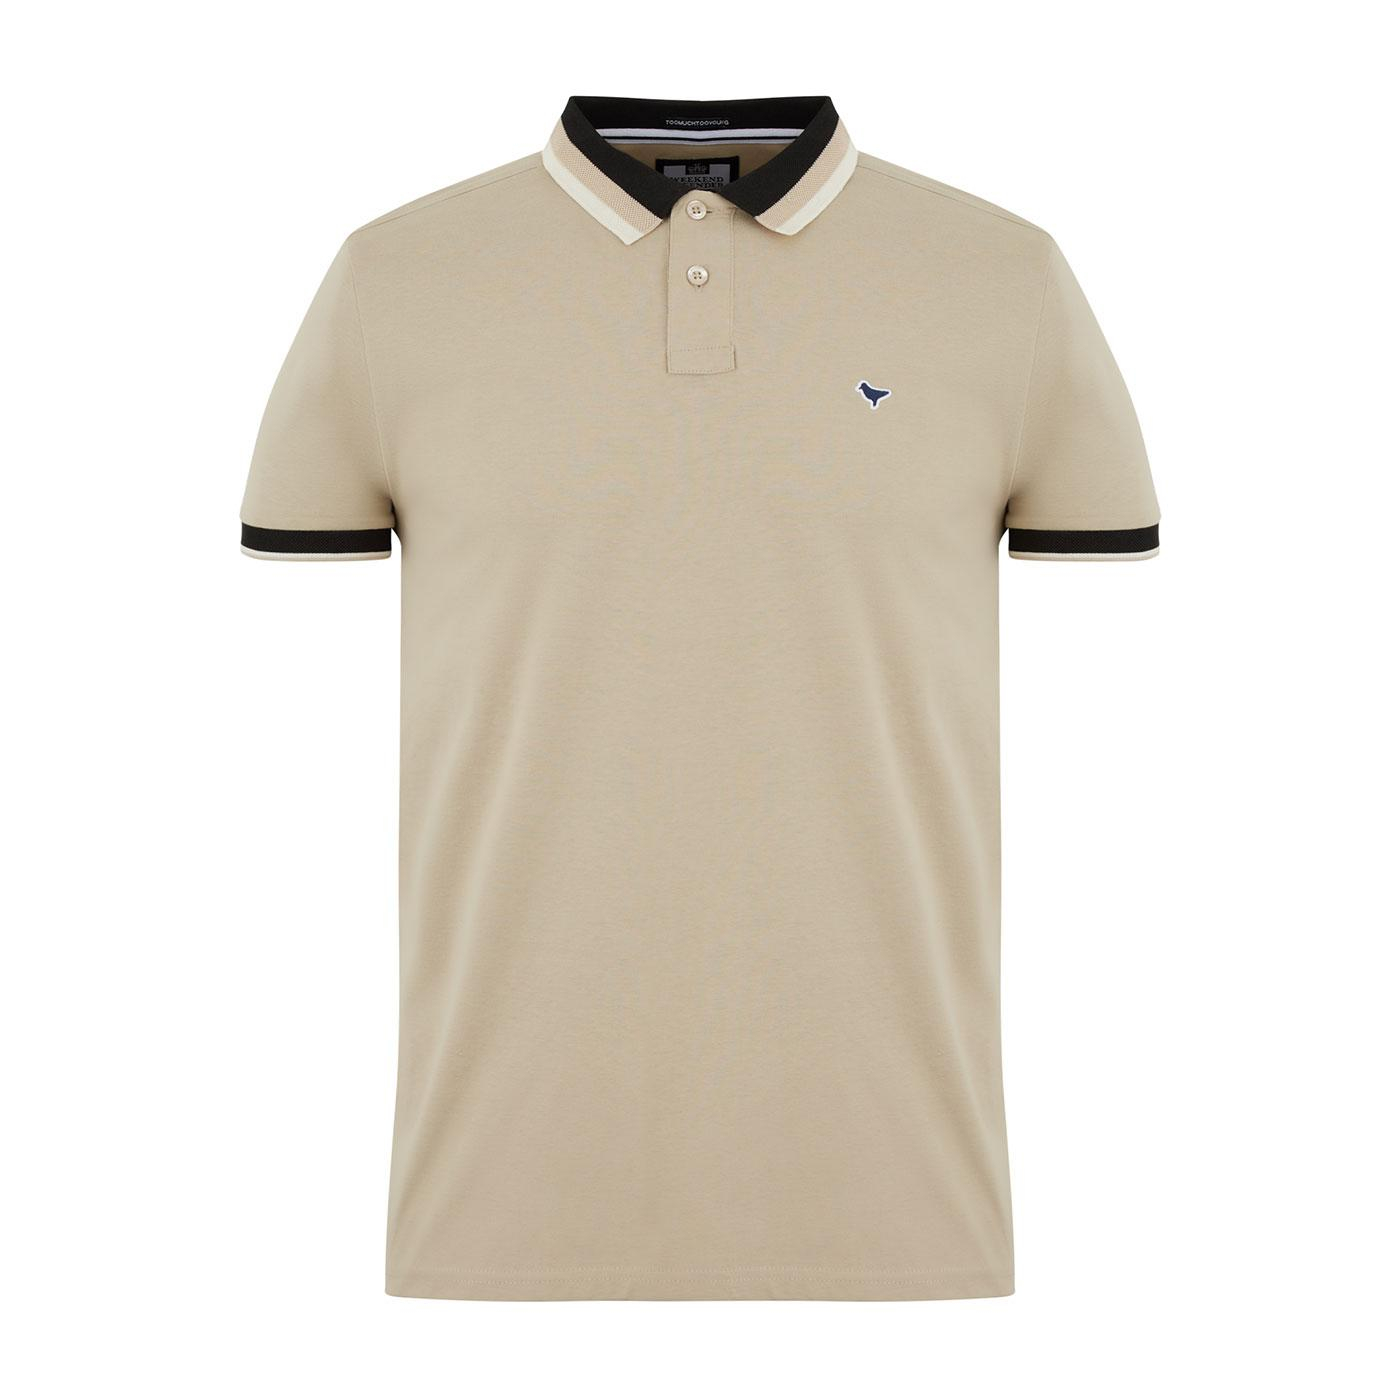 Moon Cay WEEKEND OFFENDER Mod Stripe Collar Polo S